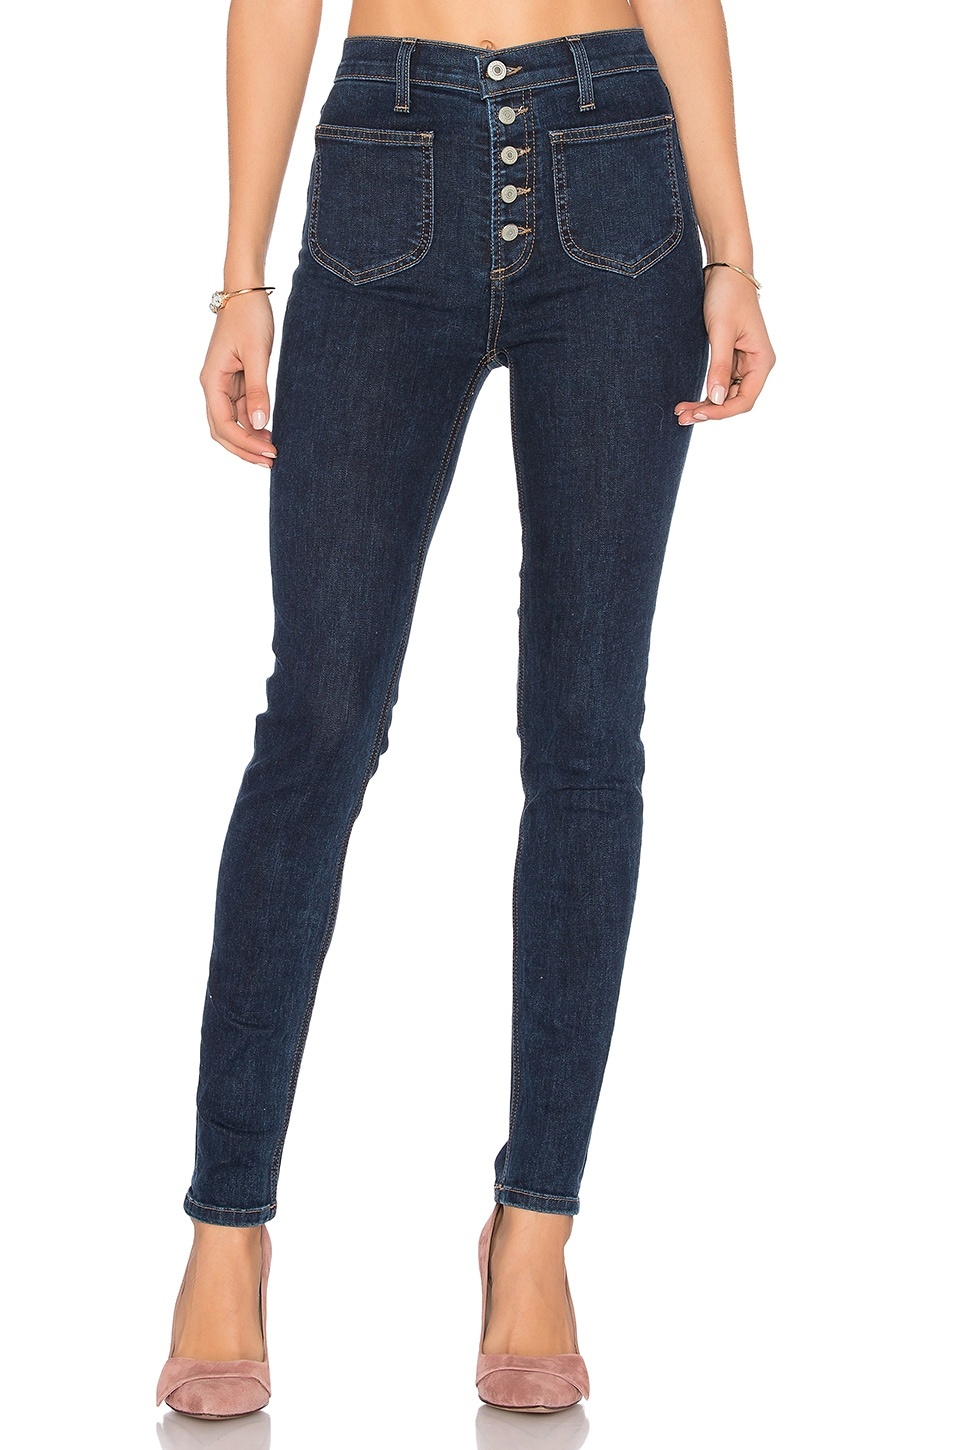 Nora High Rise Jean by Tularosa